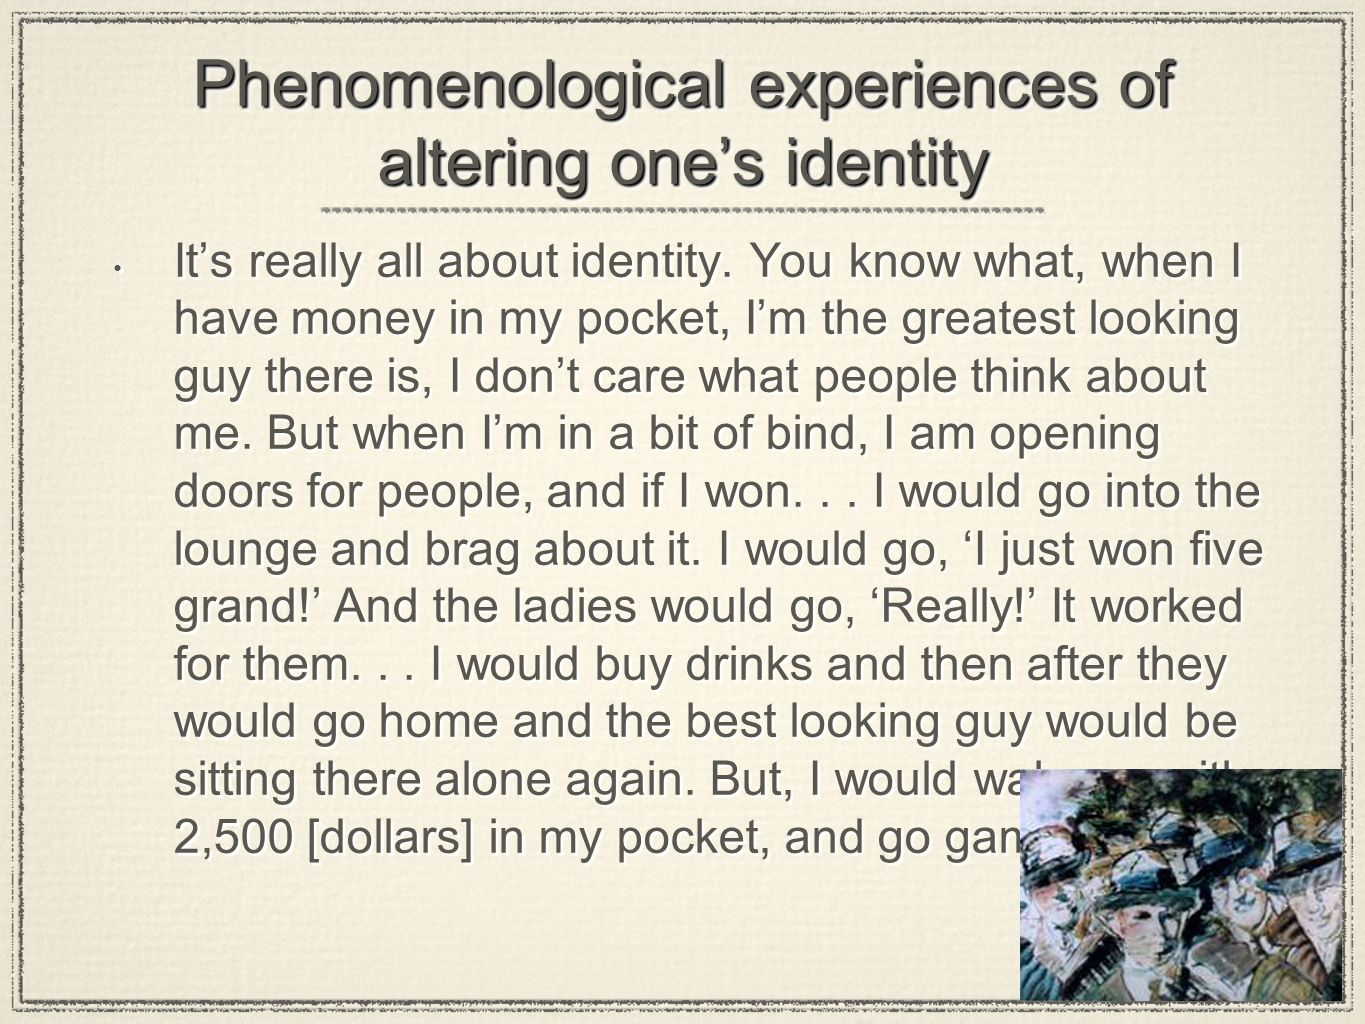 Phenomenological experiences of altering one's identity It's really all about identity. You know what, when I have money in my pocket, I'm the greates